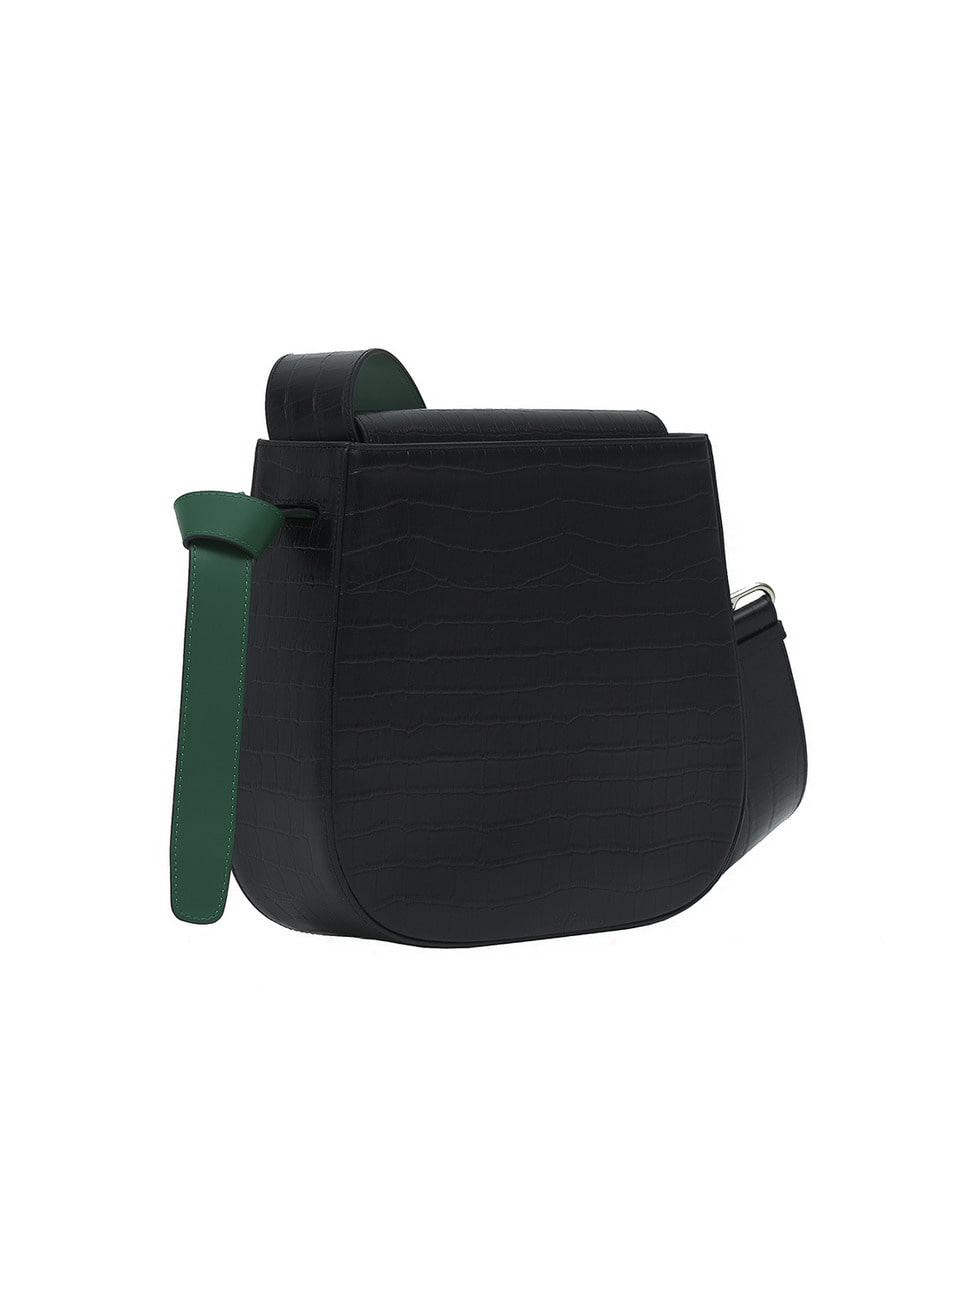 COLOR BLOCK BAG -BIG WANI BLACK